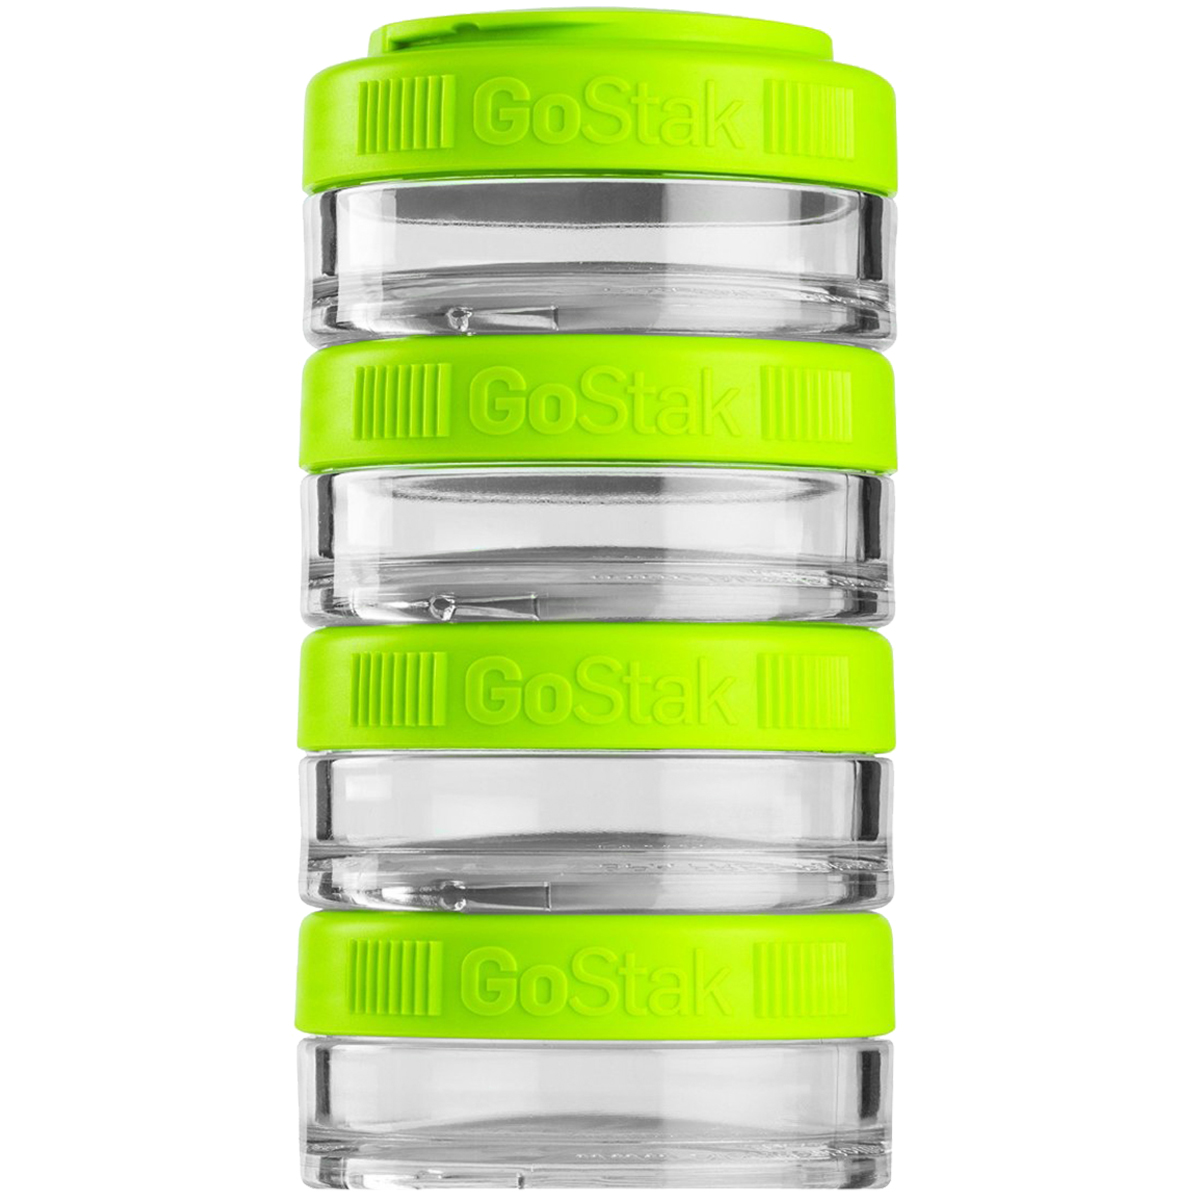 Blender Bottle GoStak 40cc 4Pak Twist n' Lock Storage Jars by Blender Bottle